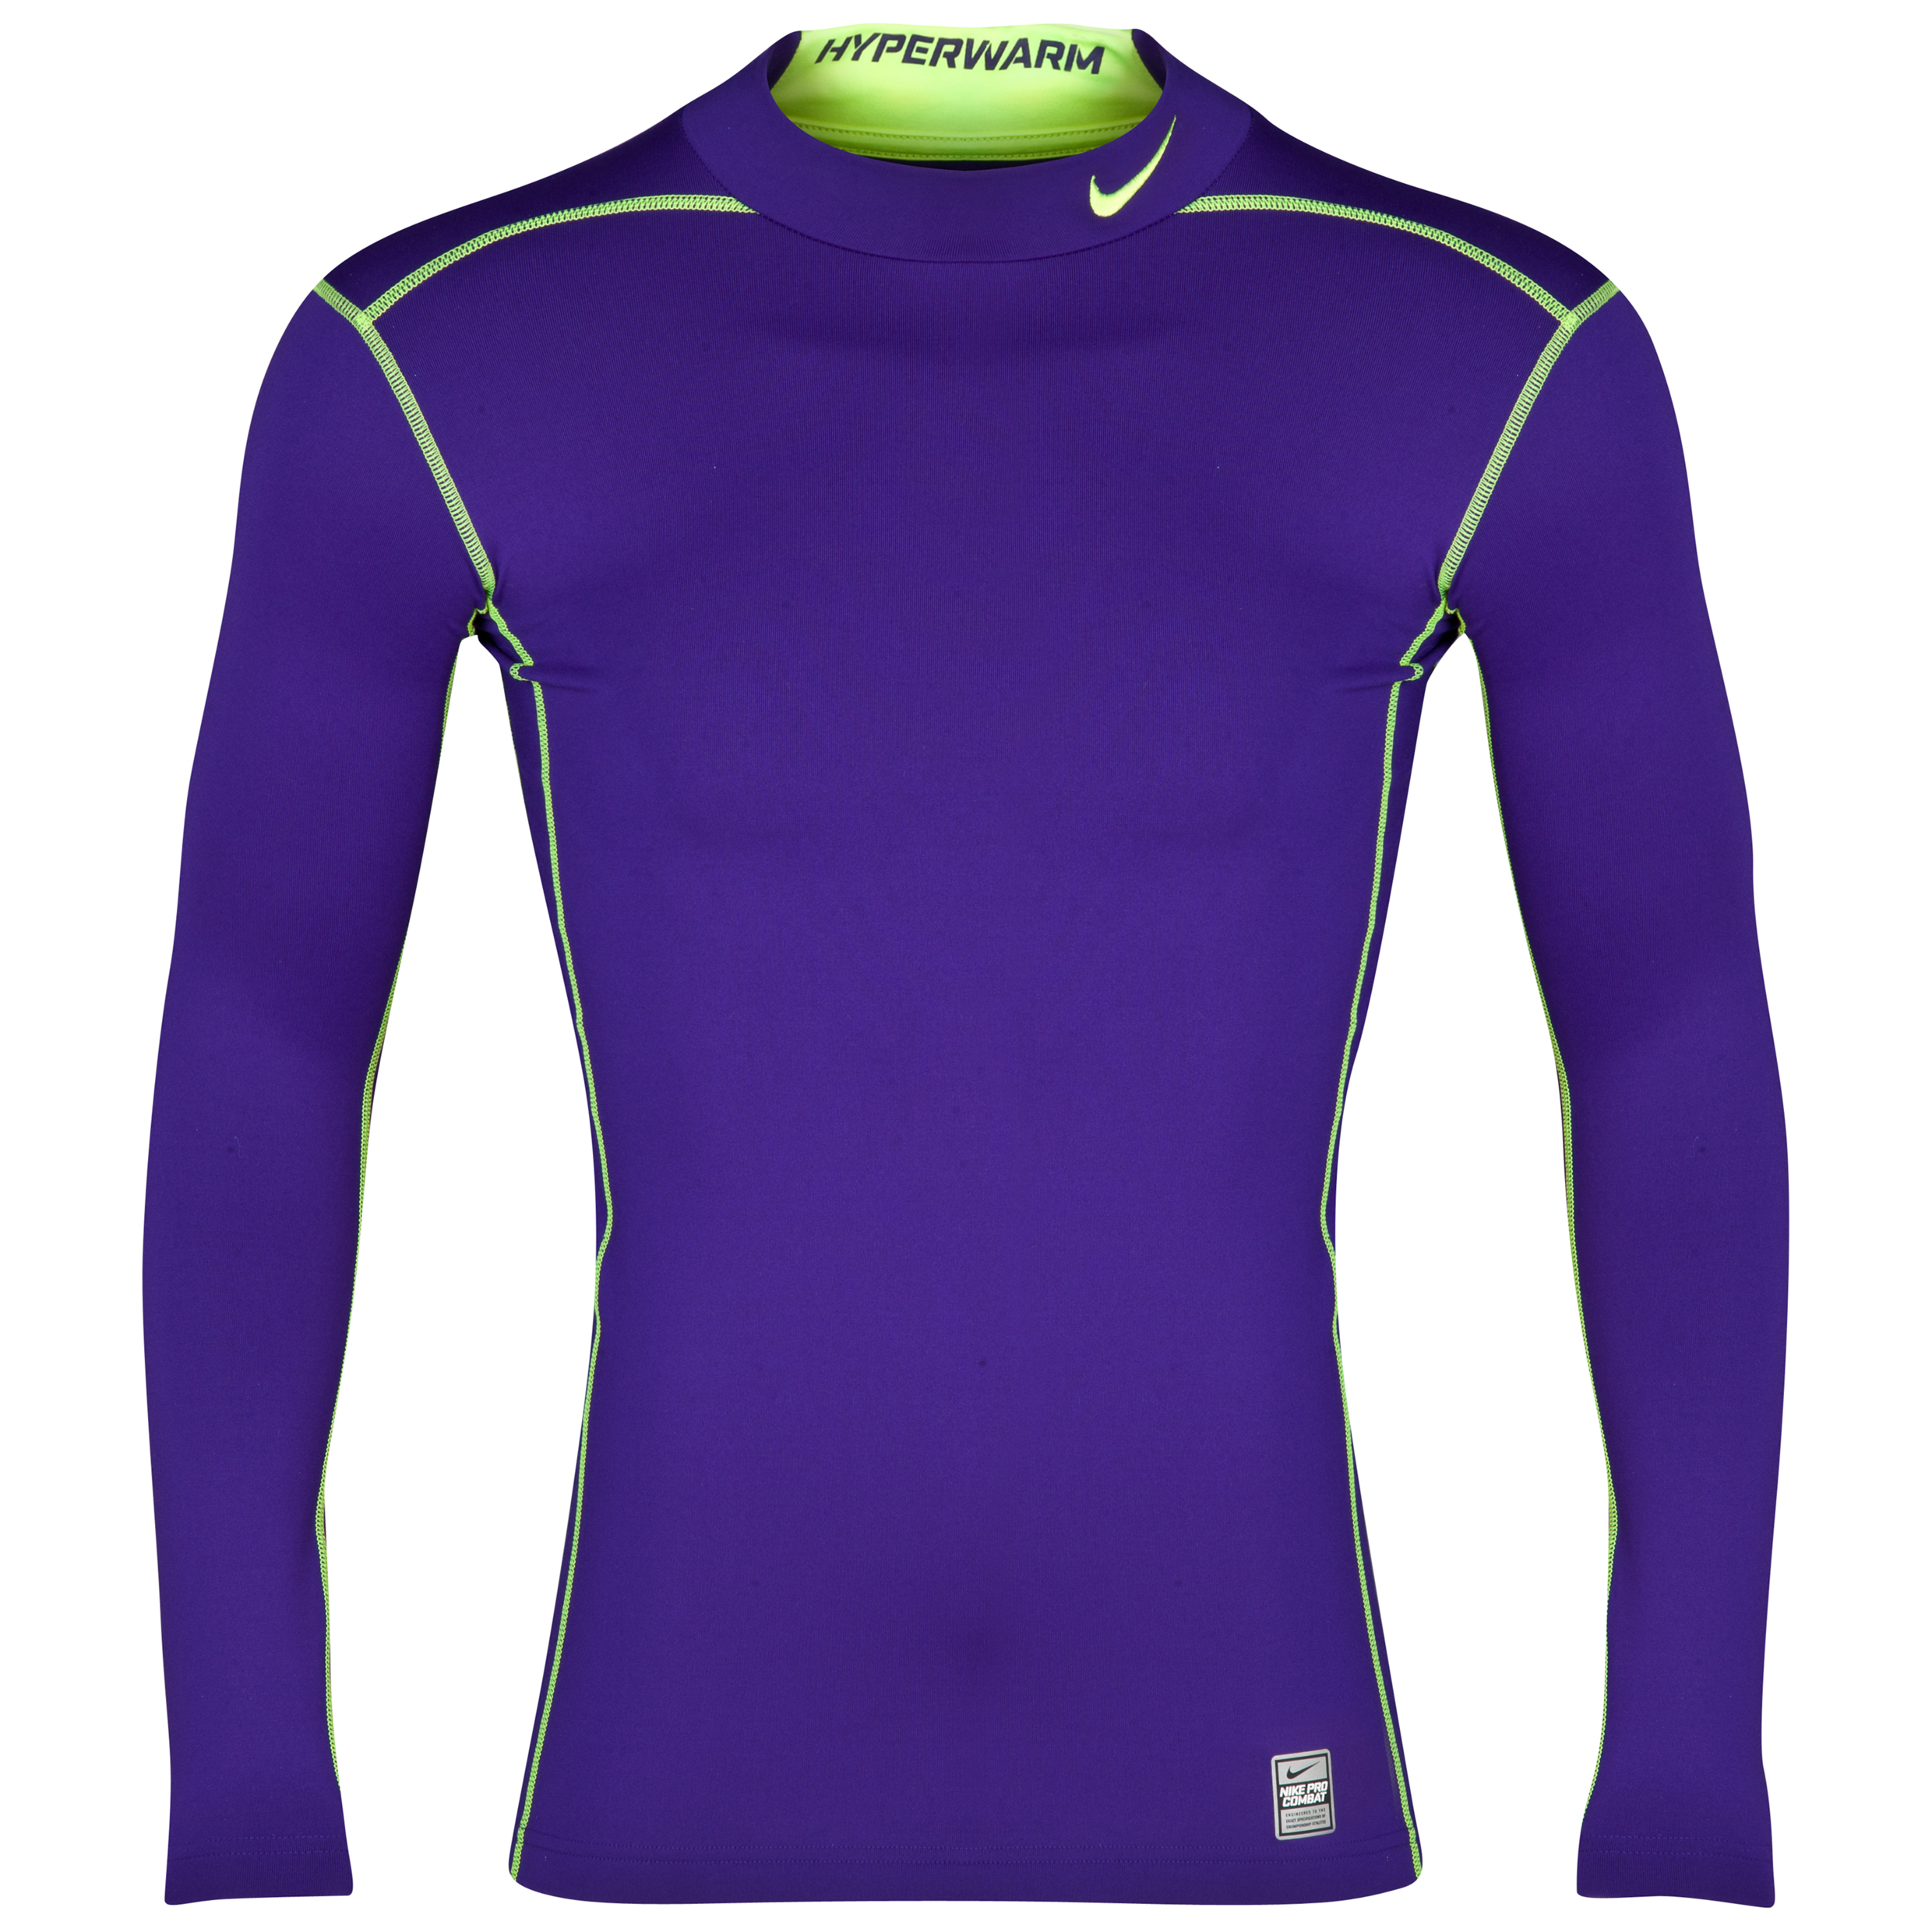 Nike Hyperwarm DriFit Comp Mock 2.0 - Electro Purple/Volt/Volt Purple